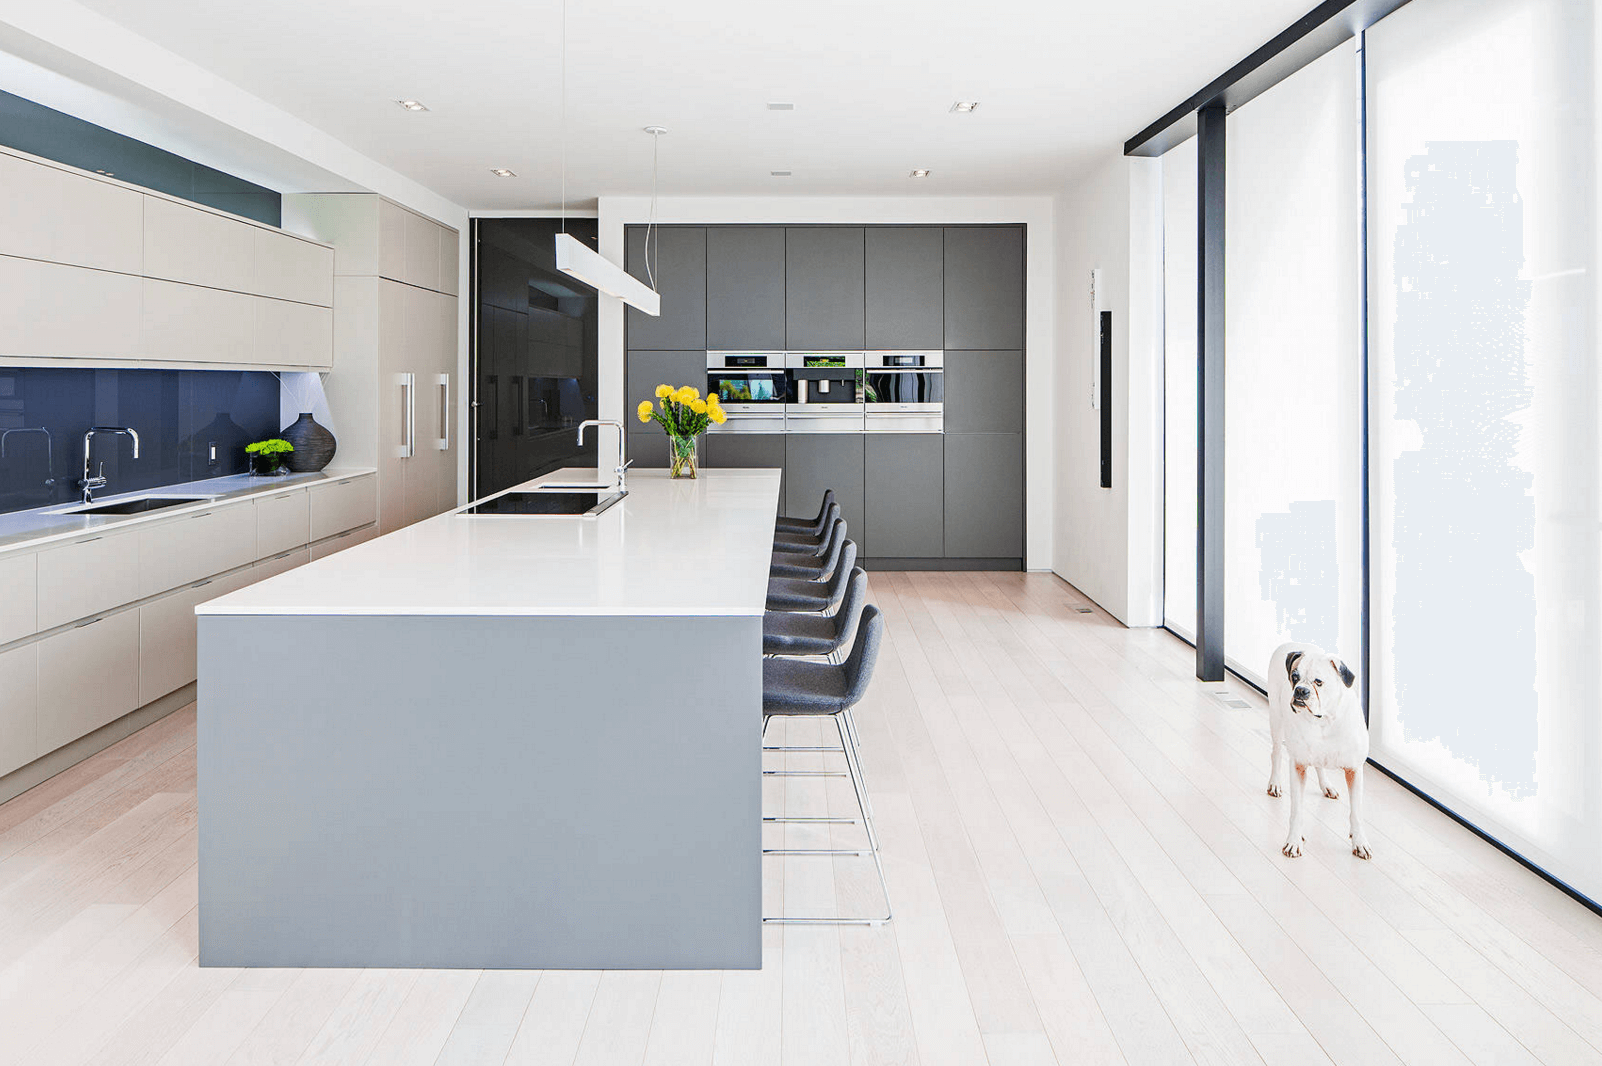 How to create a minimalist kitchen